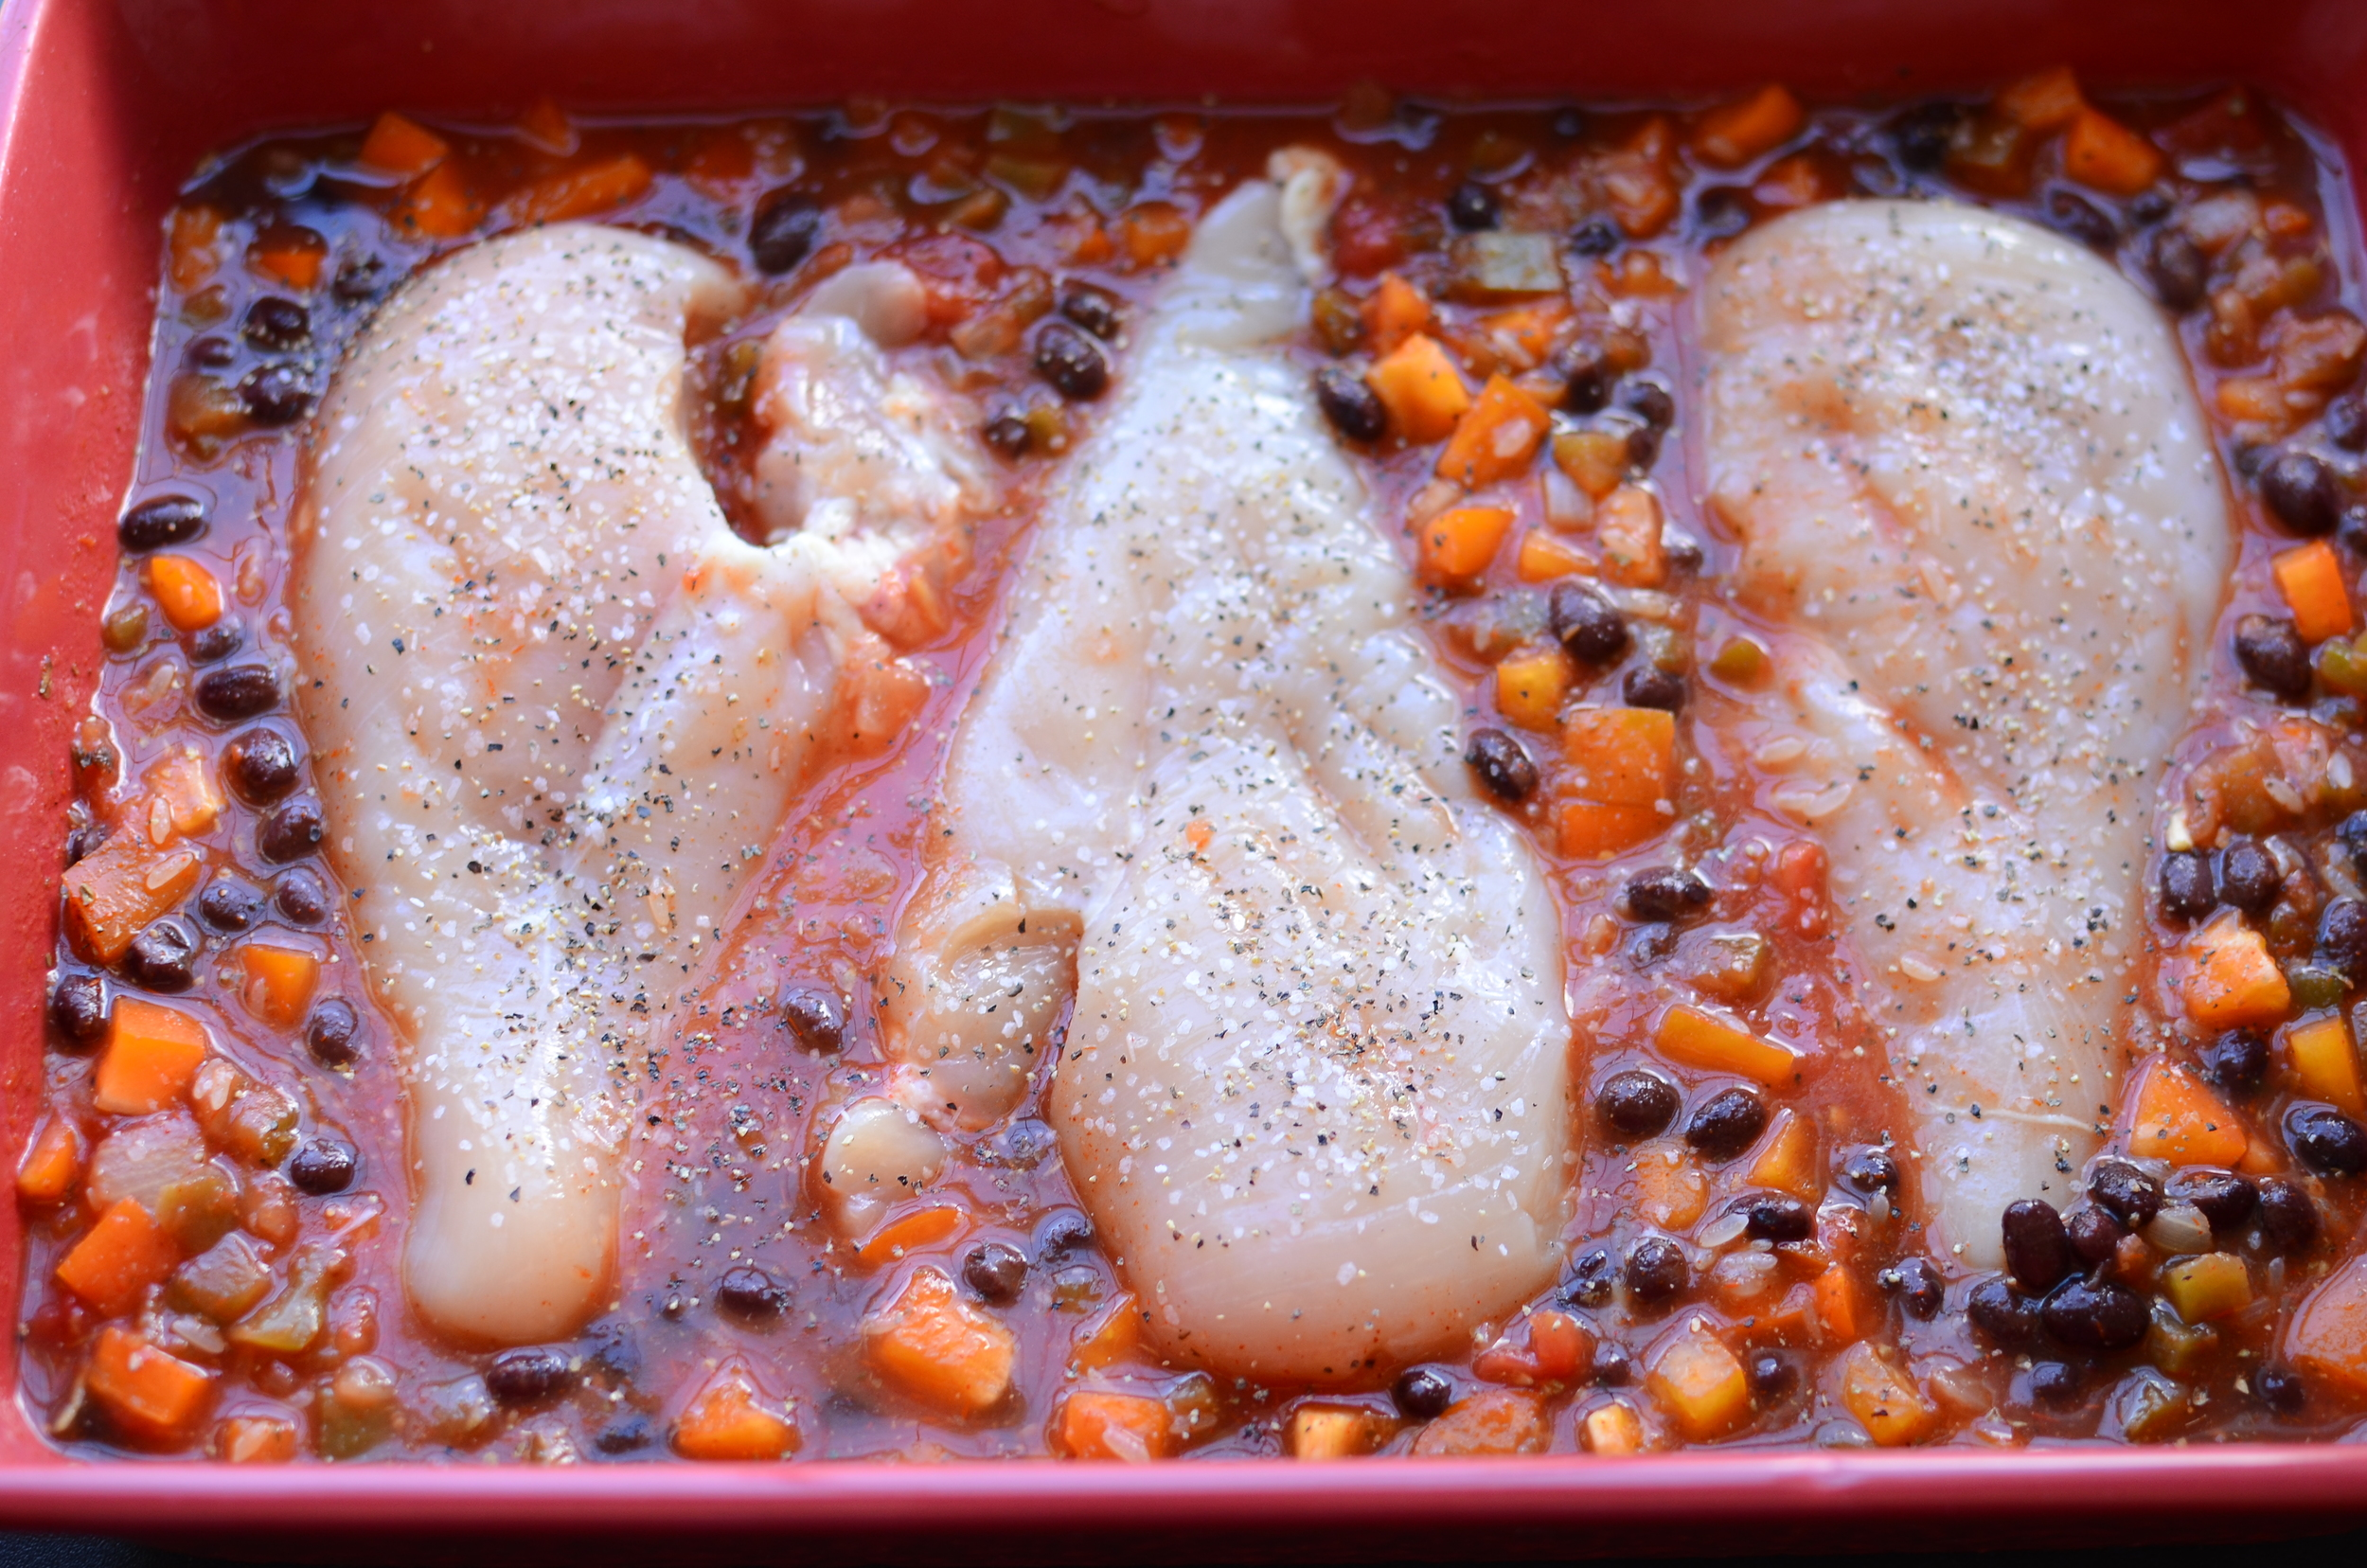 Now nestle the chicken breasts down into the mixture. No need to bury the chicken in the mixture. Be sure to sprinkle kosher salt and ground black pepper on that chicken!